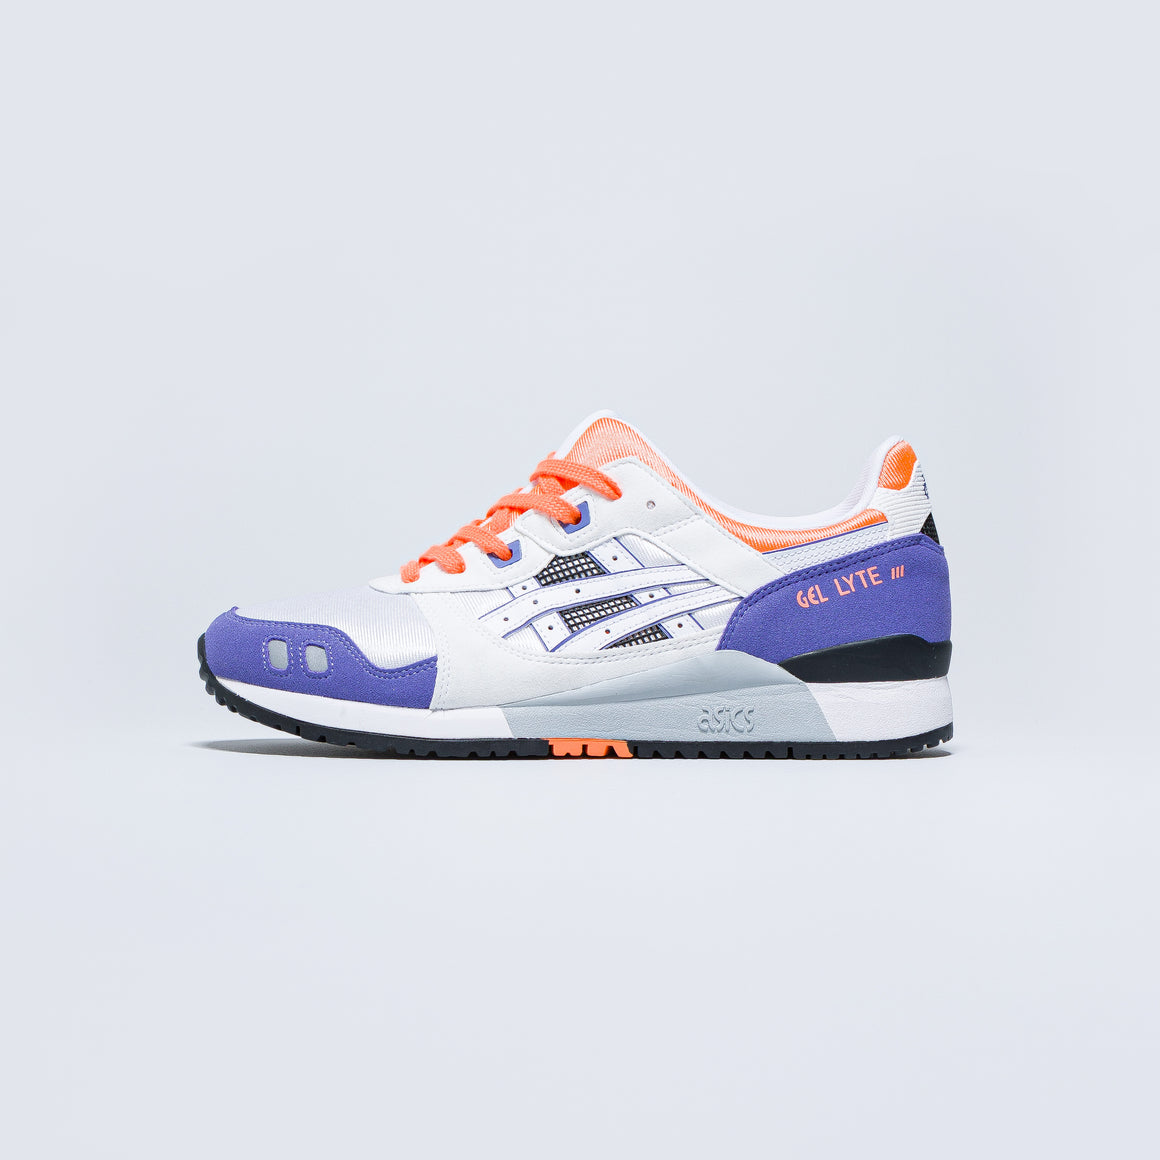 Asics - Gel-Lyte III OG - White/Purple/Orange - Up There